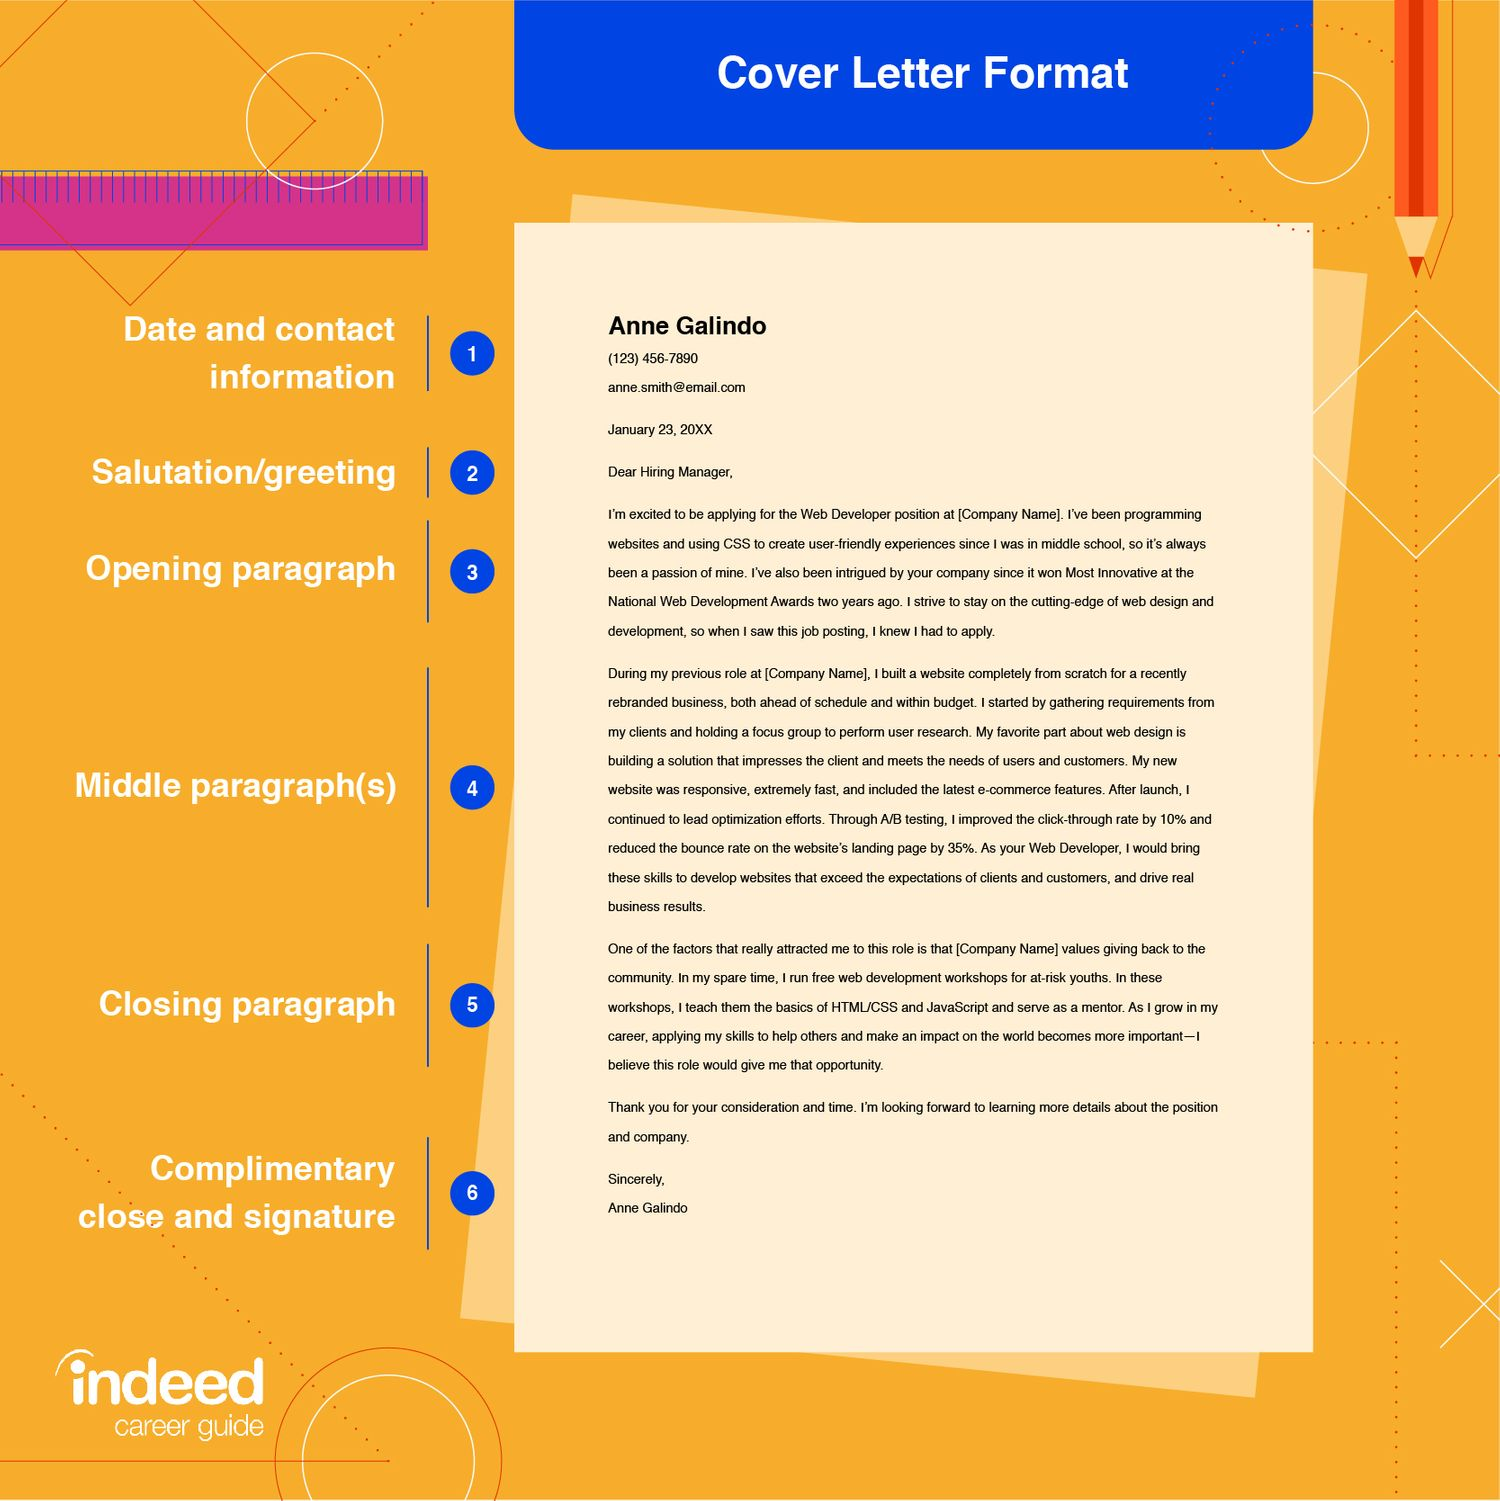 to write cover letter indeed create for your resume resized experience visualcv builder Resume Create A Cover Letter For Your Resume Online